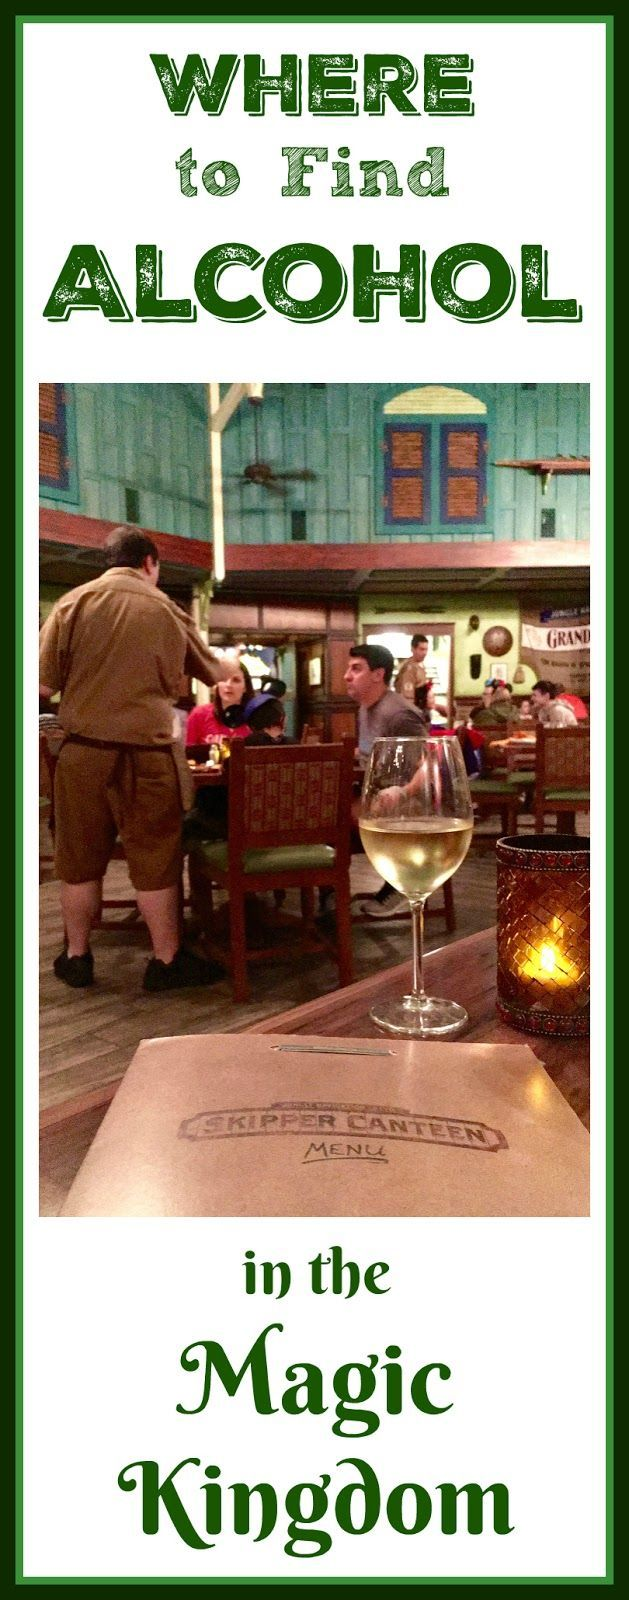 Disney World Food, Drink and Restaurants | Where to Find Alcohol in the Magic Kingdom